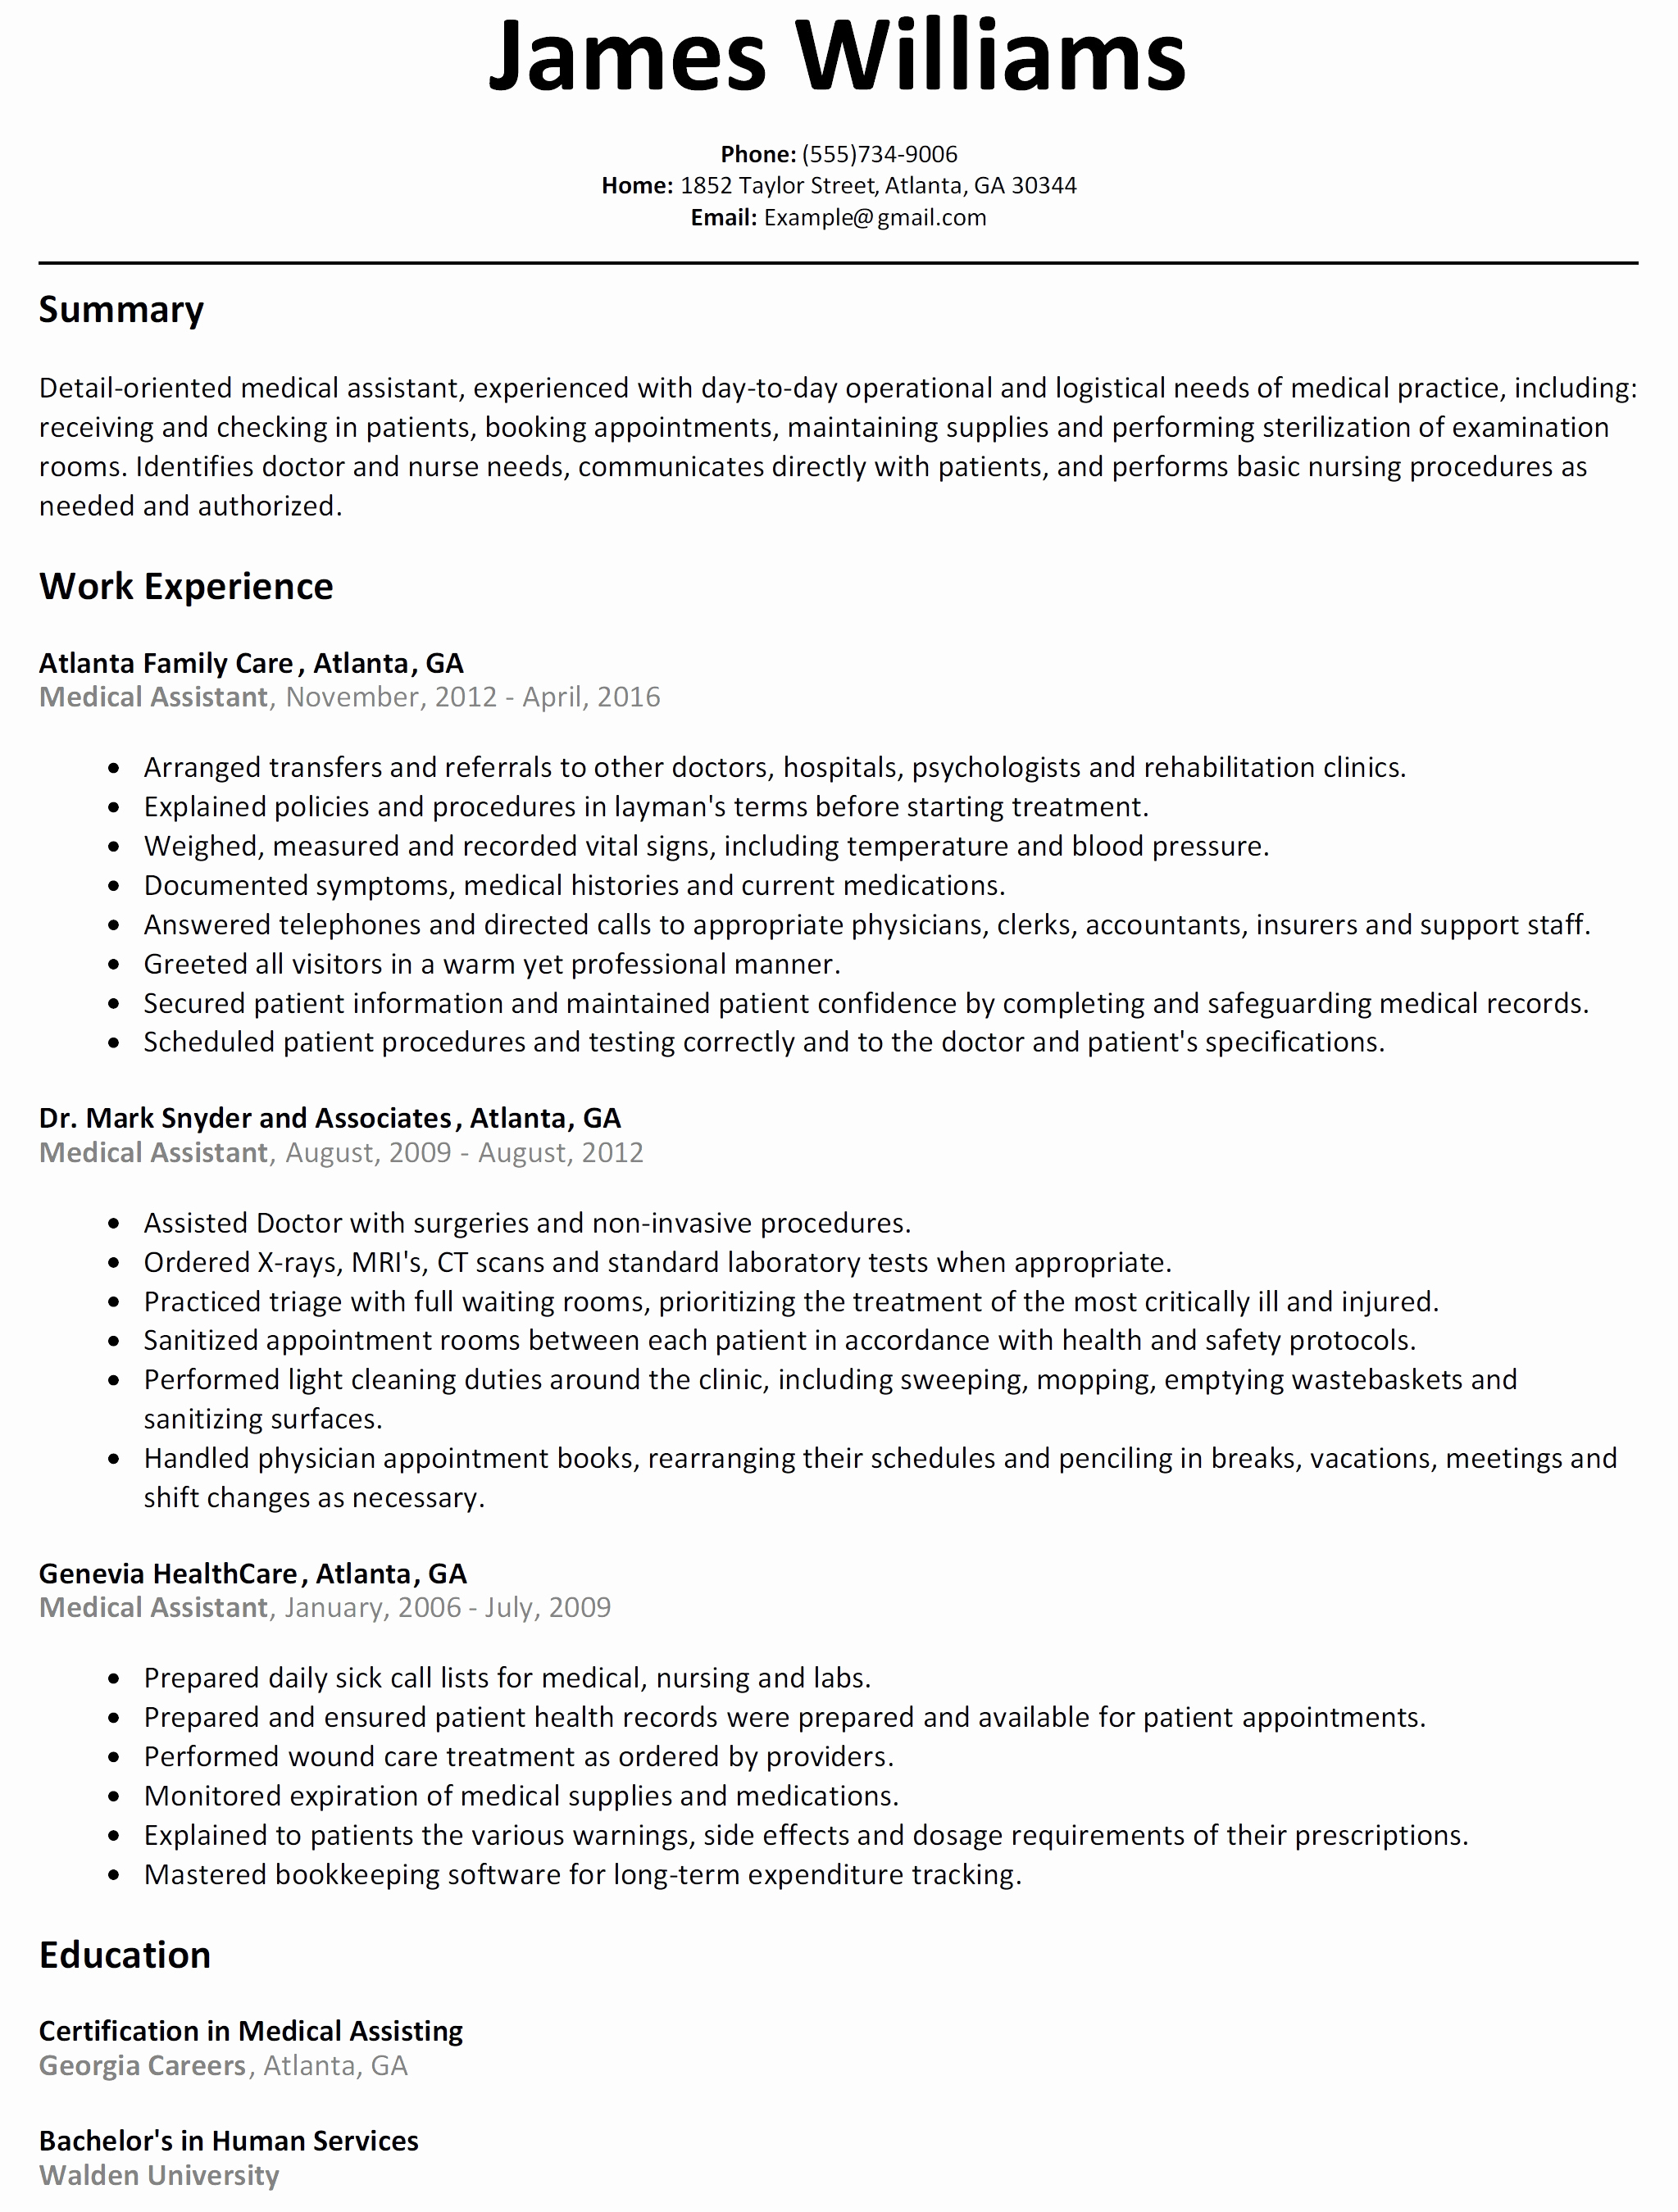 Postdoc Cover Letter Template - Cover Letter Post Doc Elegant Academic Resume Sample Beautiful